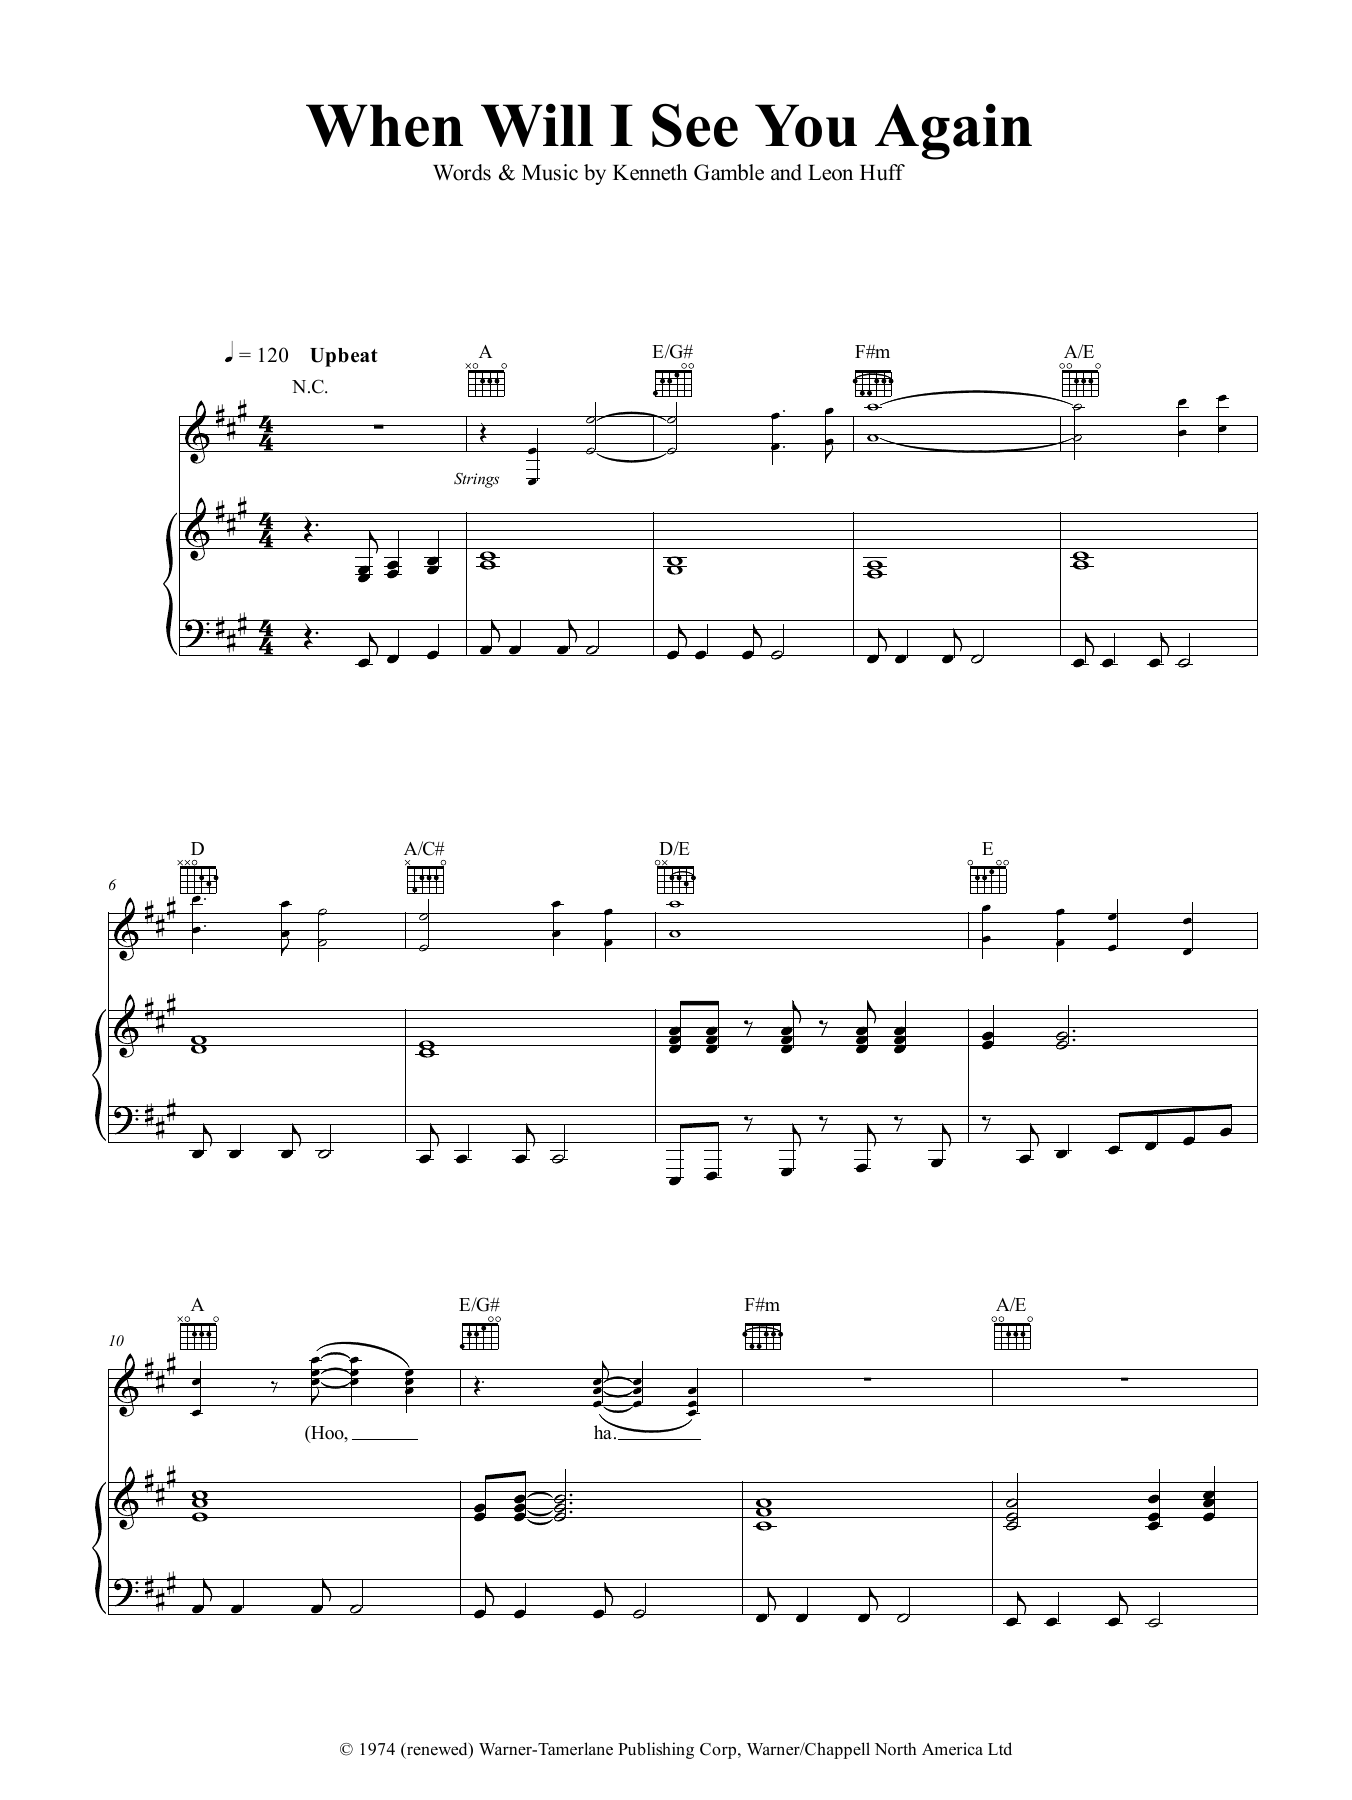 When Will I See You Again Sheet Music Three Degrees Piano